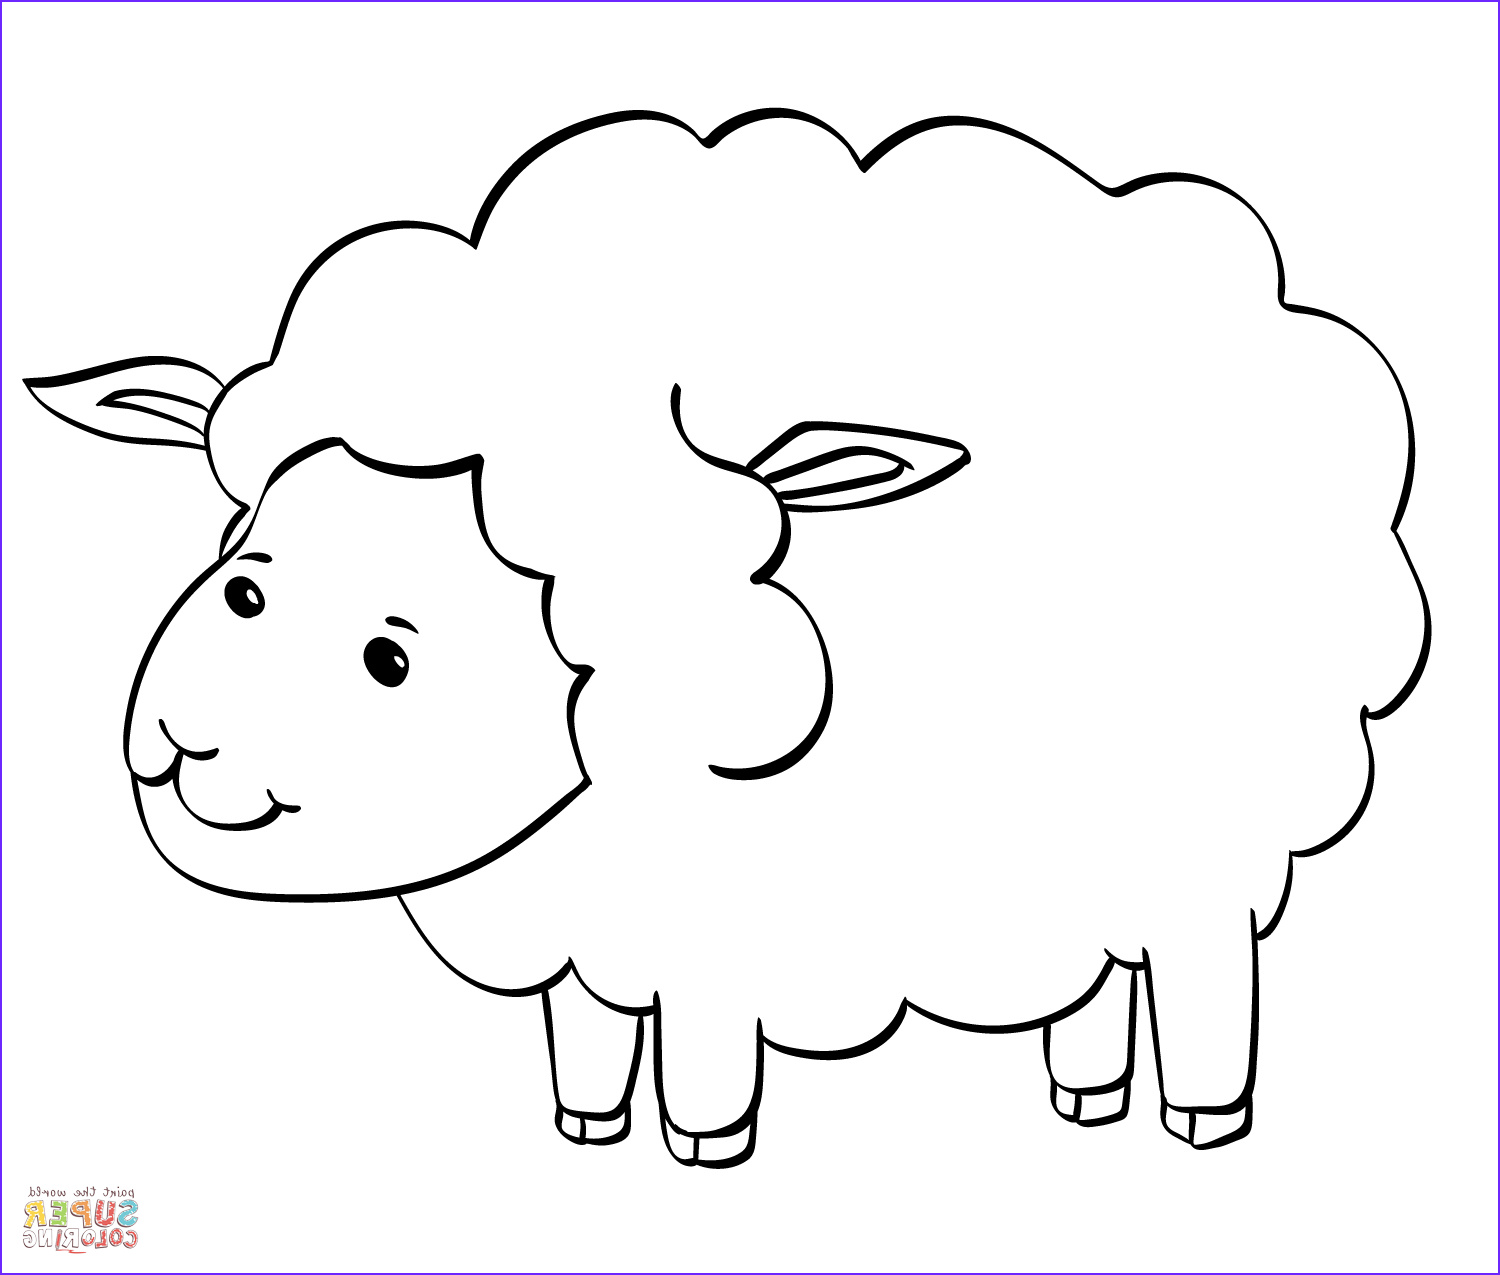 Sheep Coloring Sheet Best Of Collection Cute Sheep Coloring Page